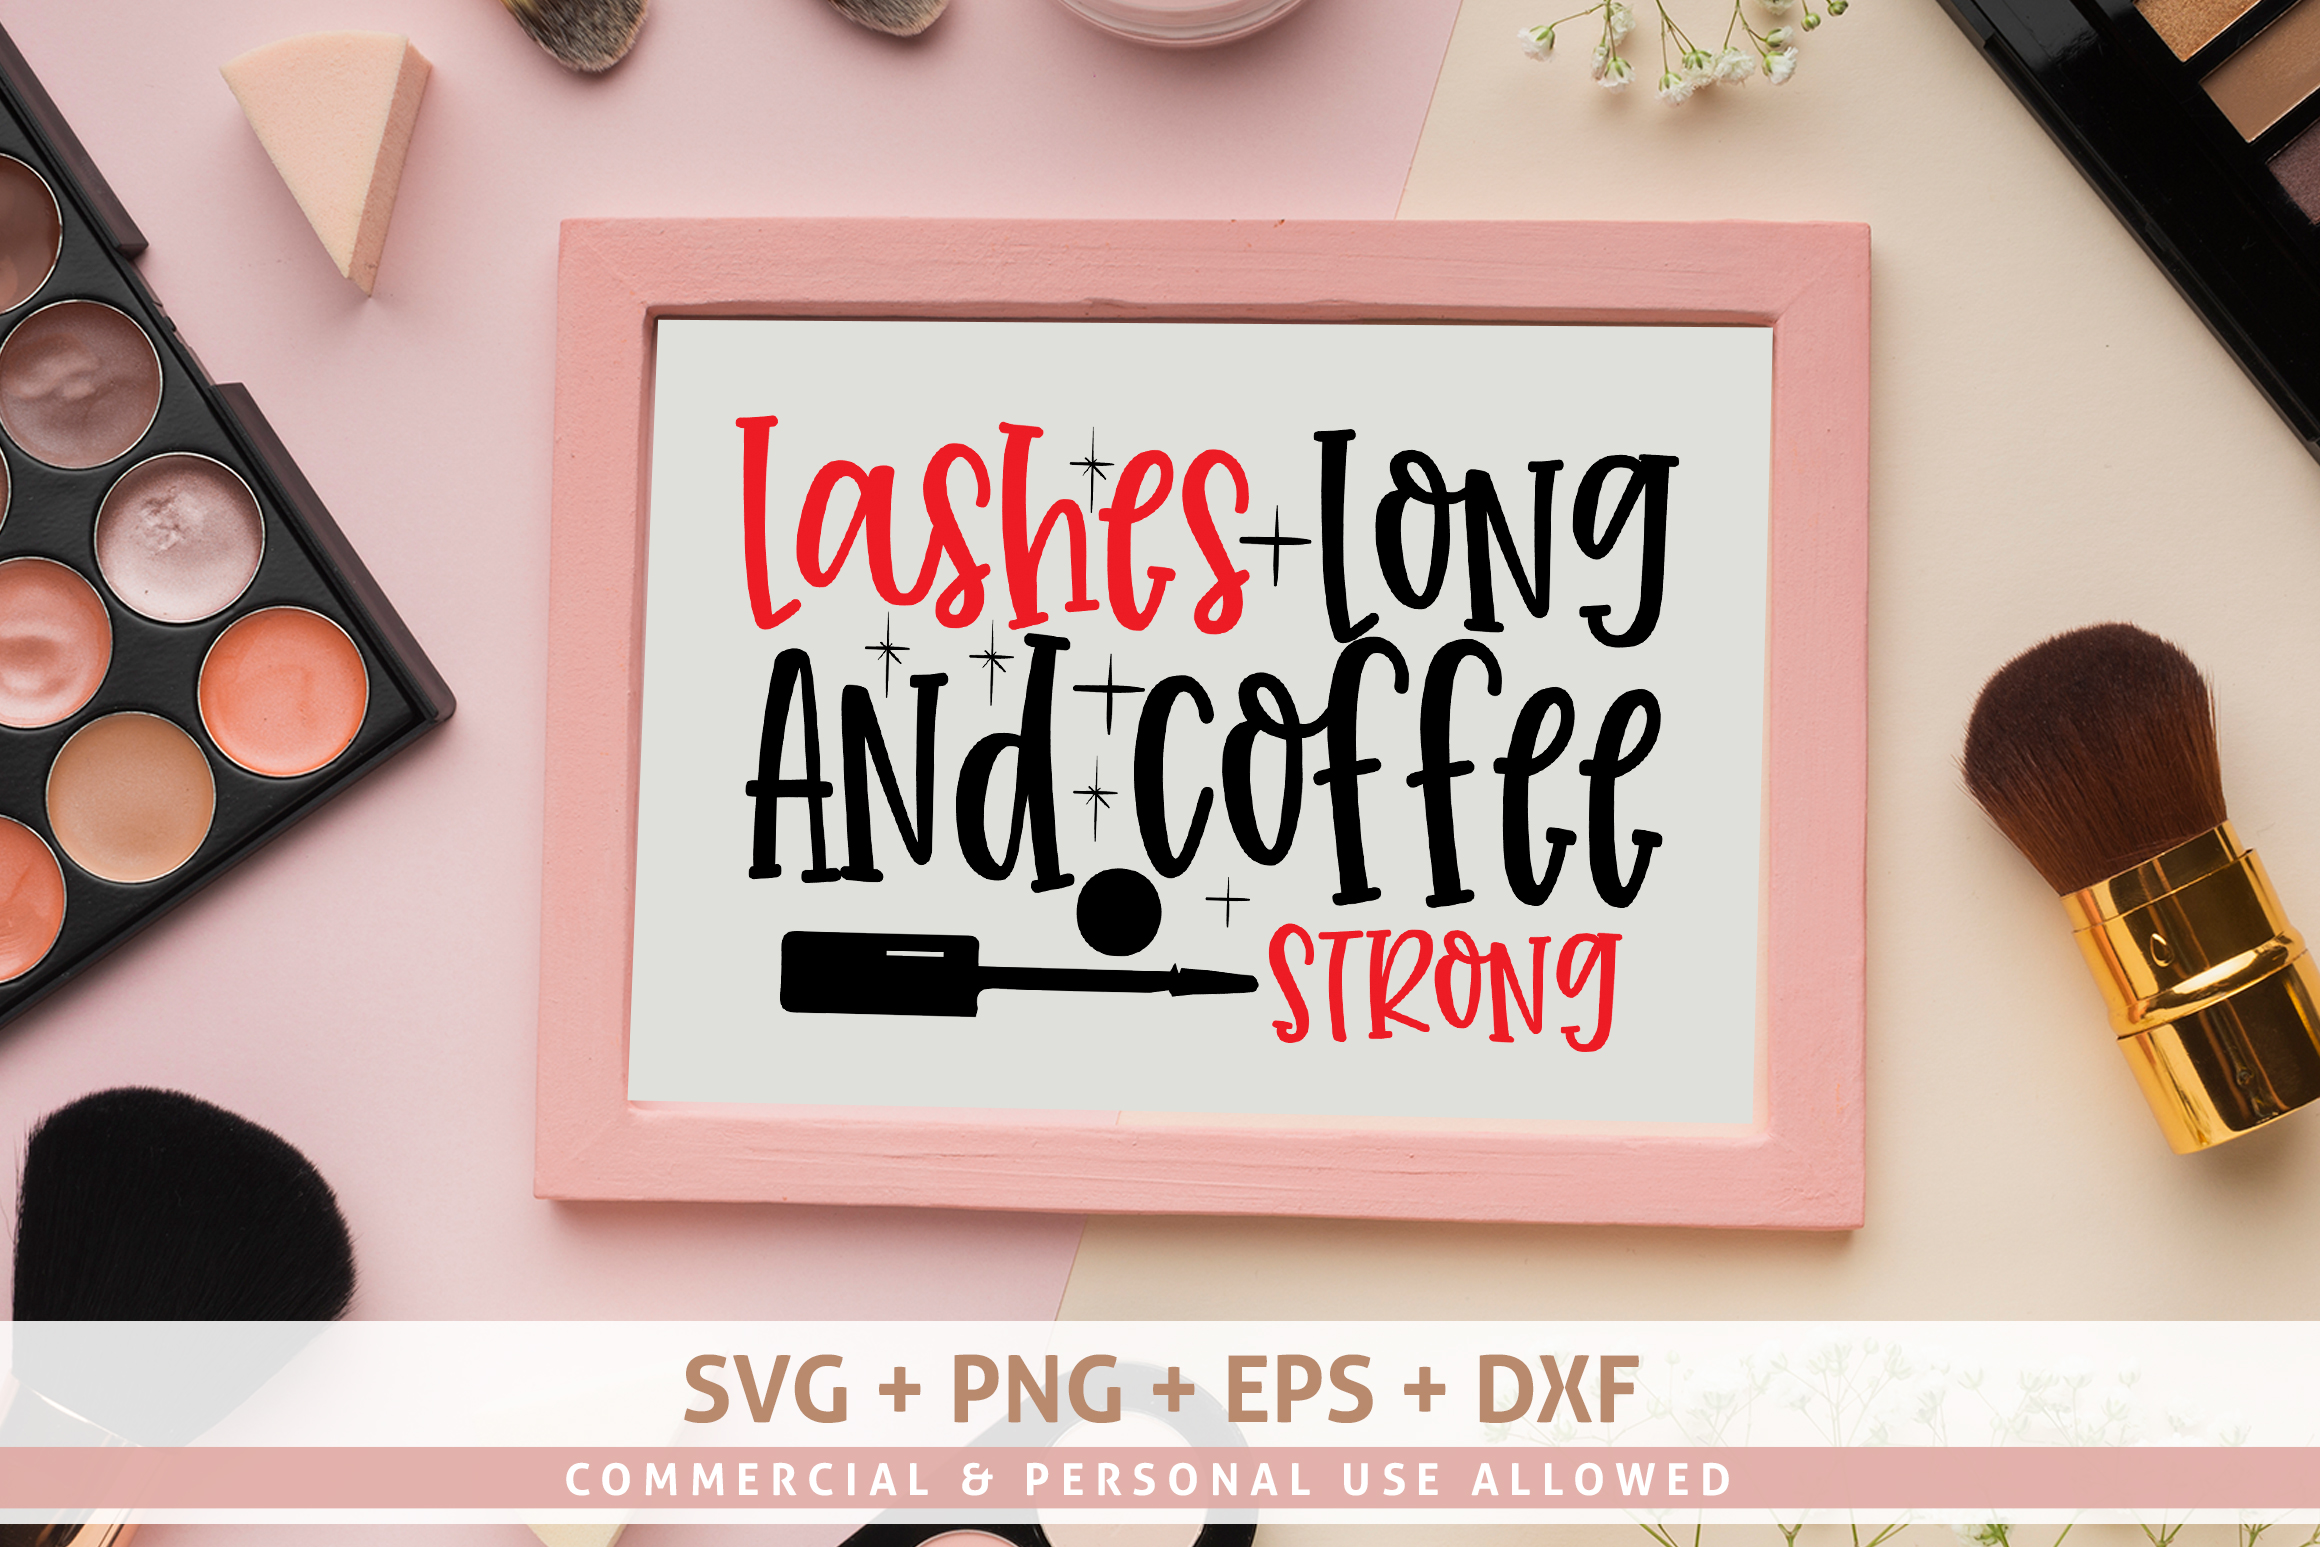 Lashes Long And Coffee Strong SVG Design example image 1